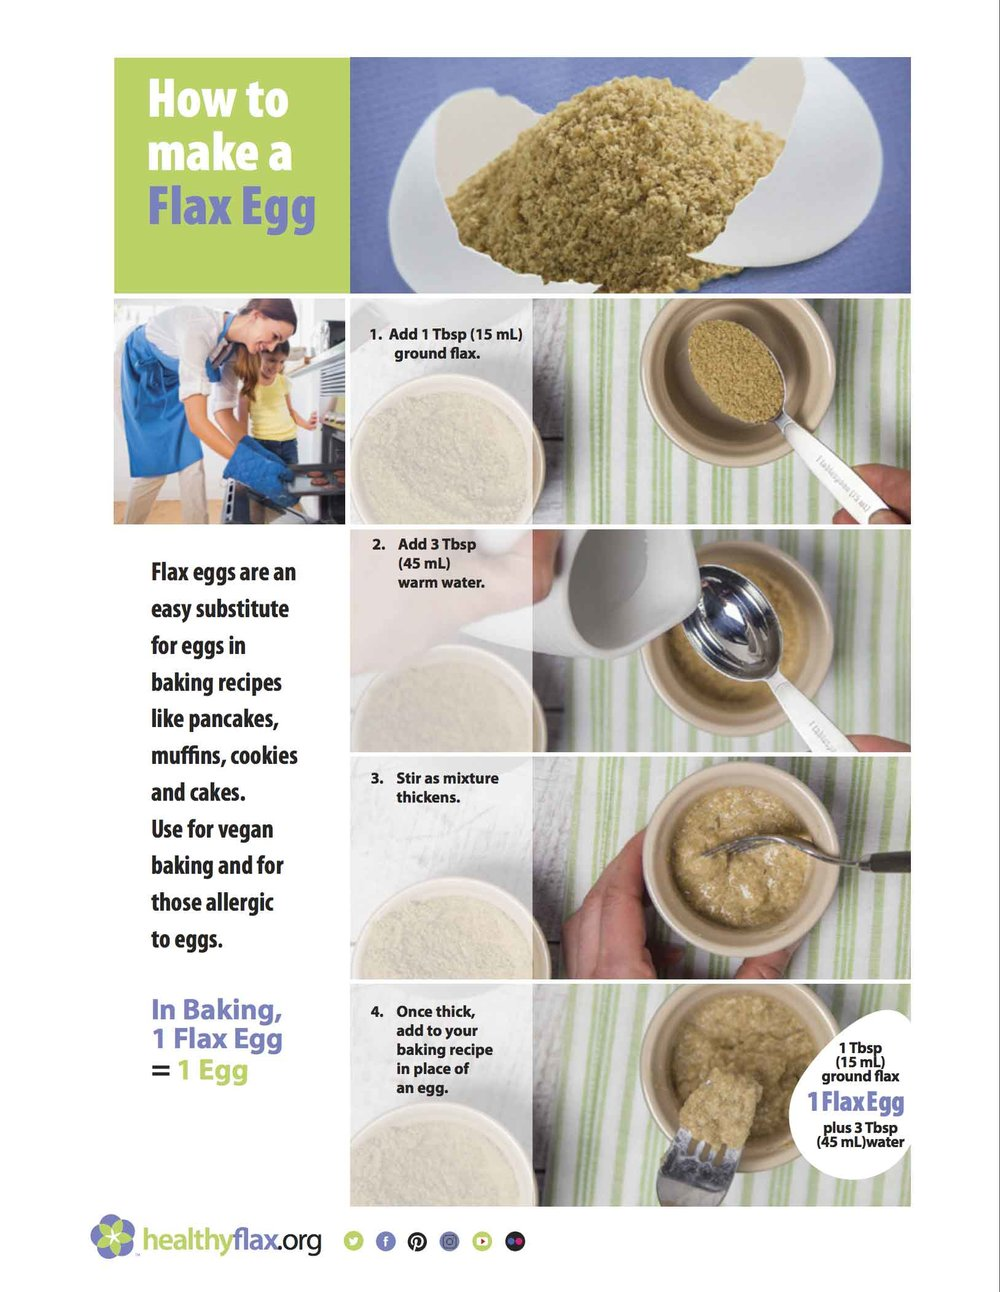 How to Make a Flax Egg - Consumer-friendly factsheet.